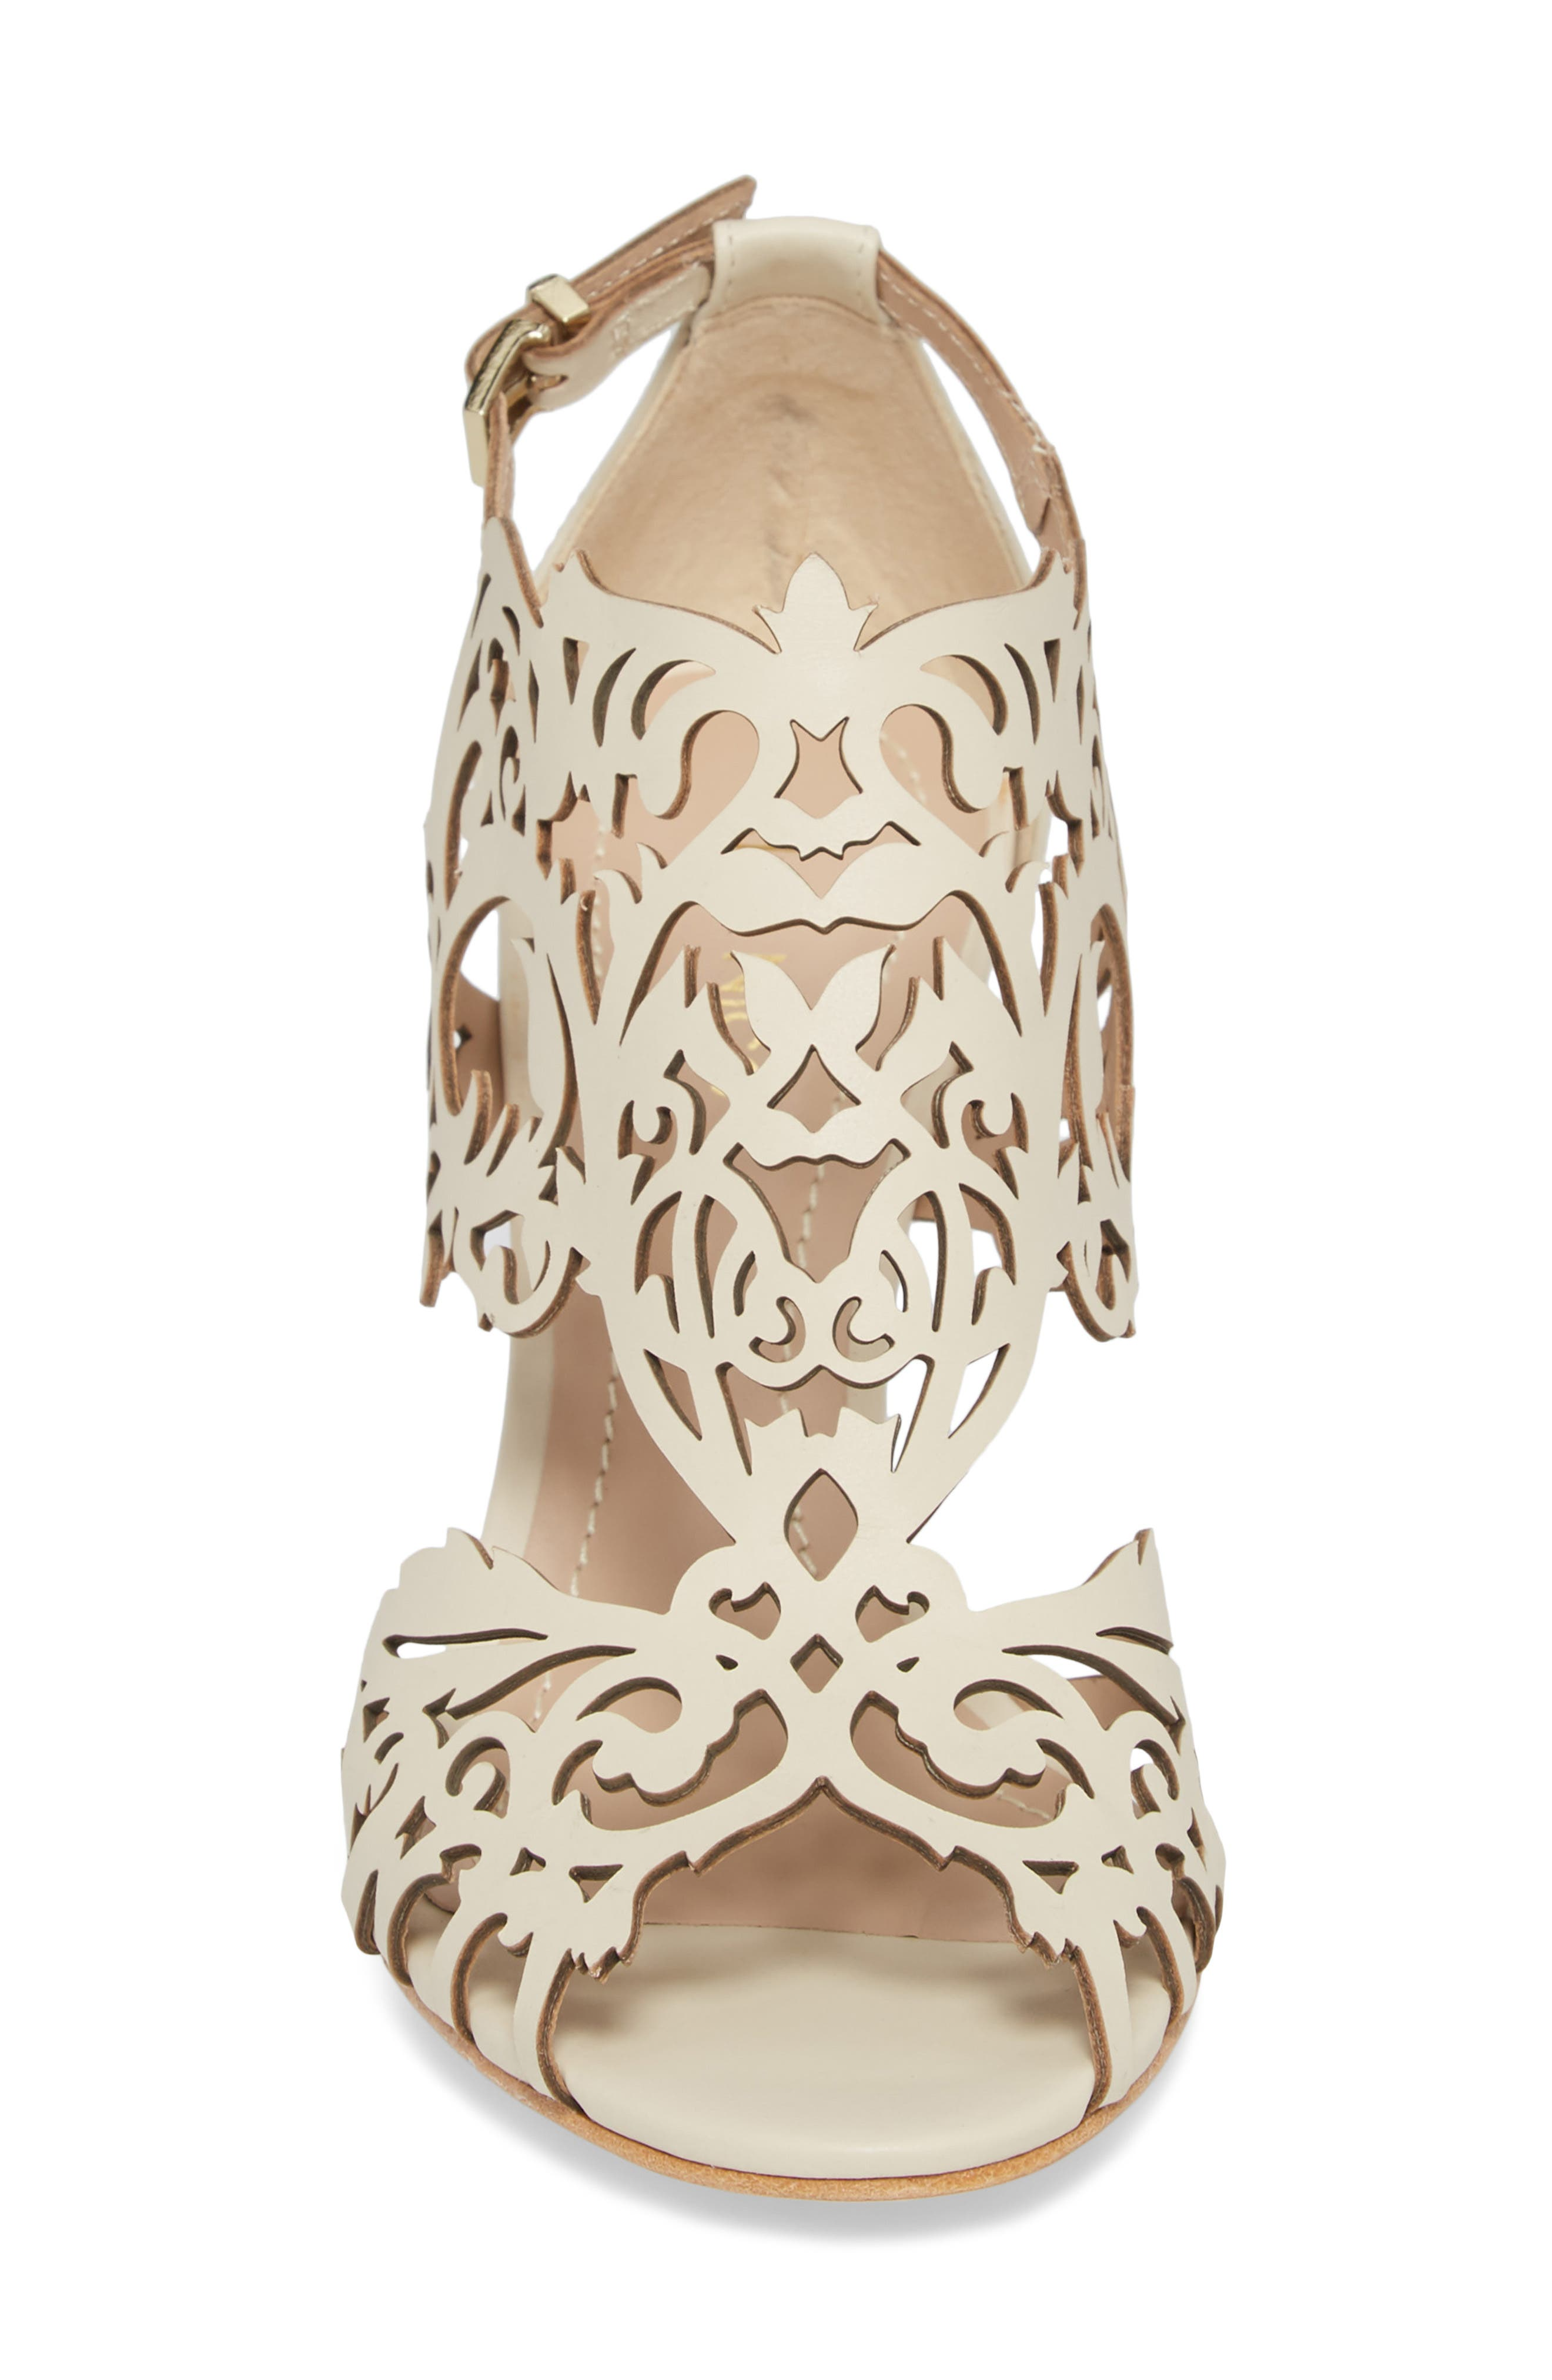 Marcela 3 Laser Cutout Sandal,                             Alternate thumbnail 4, color,                             Ivory Leather